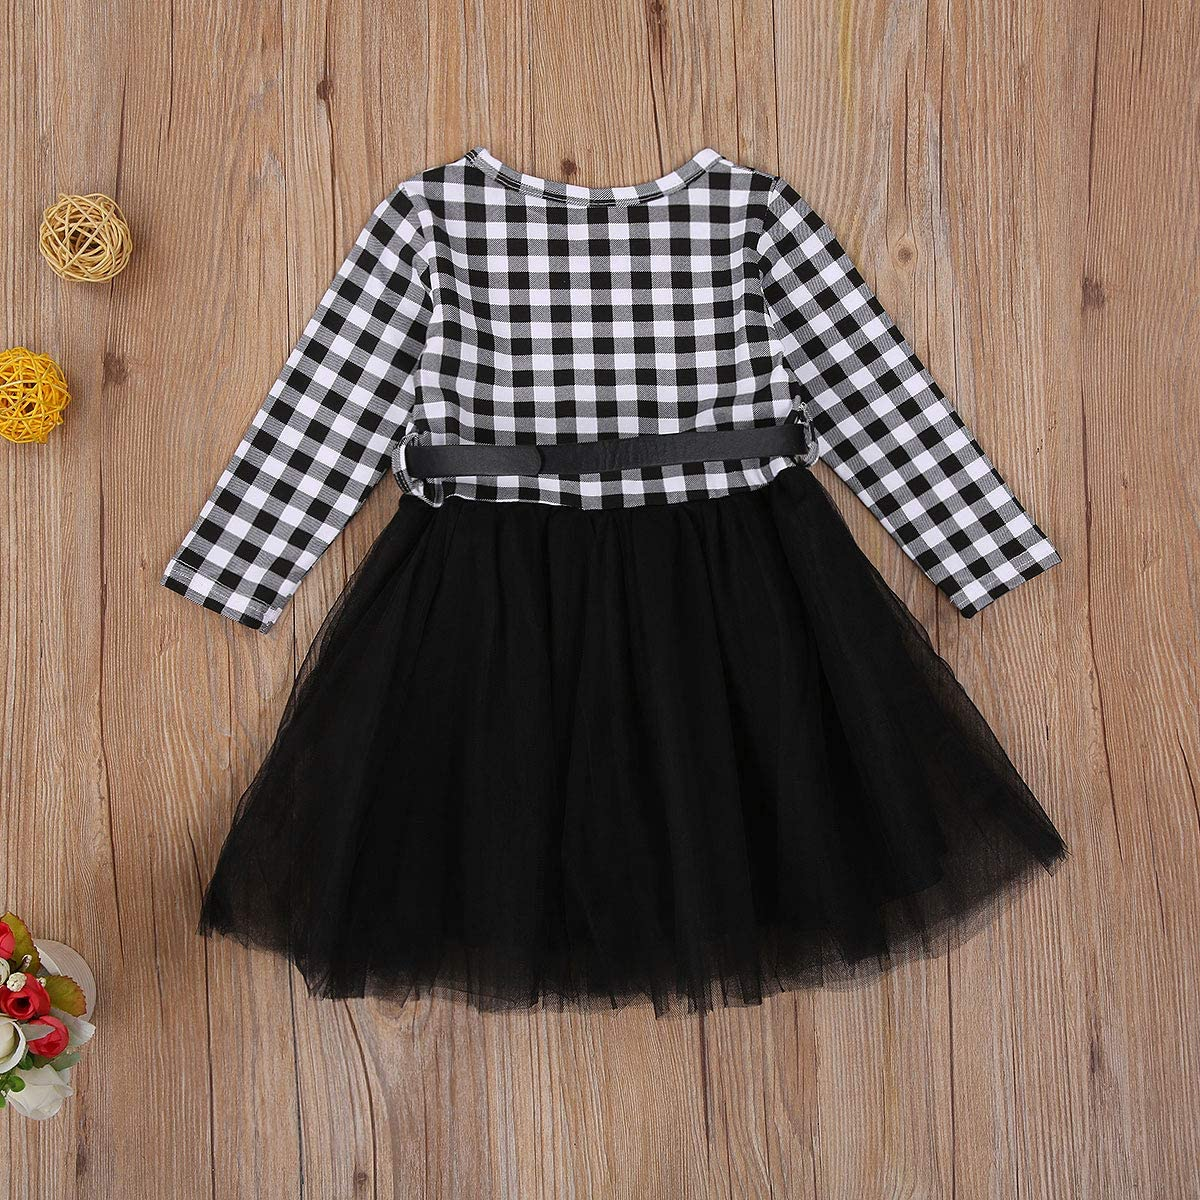 Toddler Baby Girl Christmas Outfit Long Sleeve Plaid T-Shirt Top Tulle Tutu Skirt 2Pcs Fall Winter Clothes Set